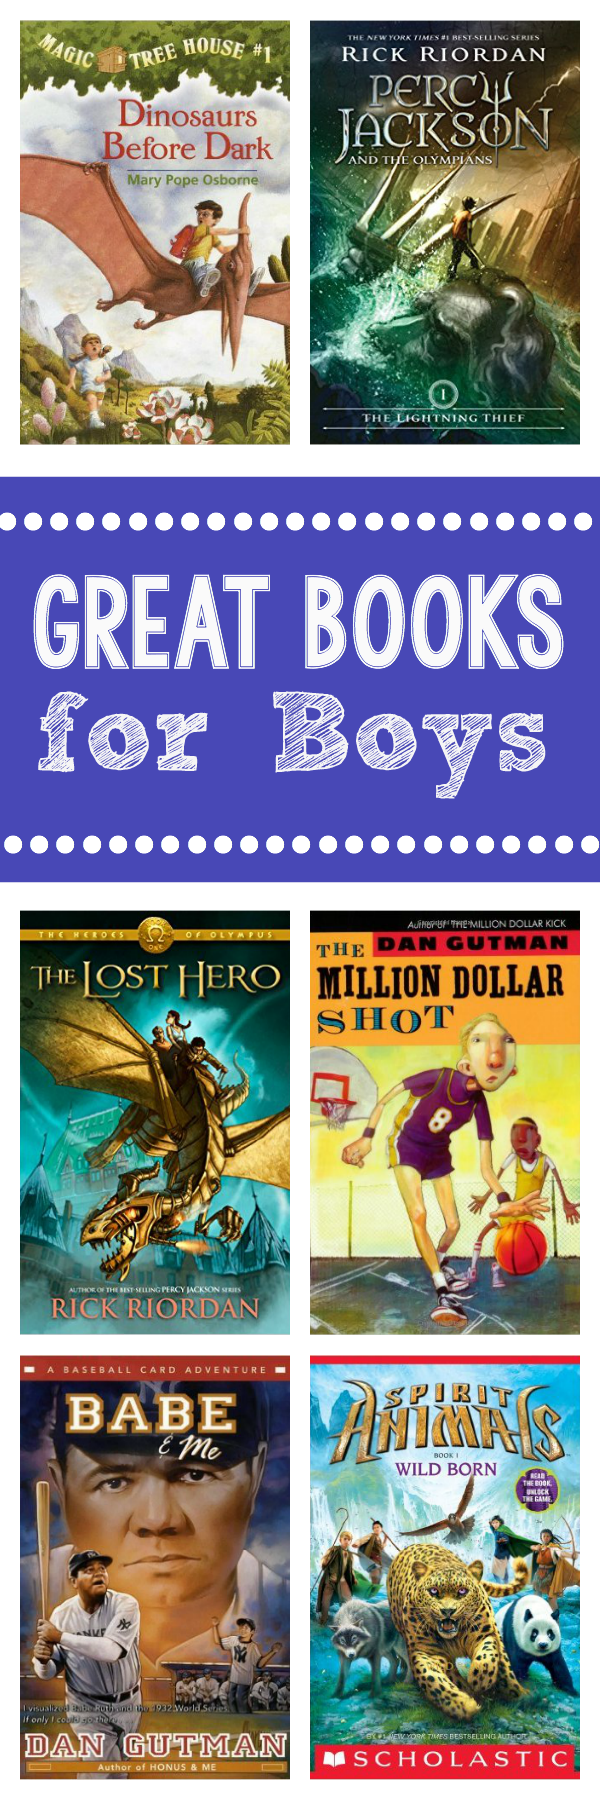 Great Summer Books for Boys-Book Recommendations for Elementary Age Boys